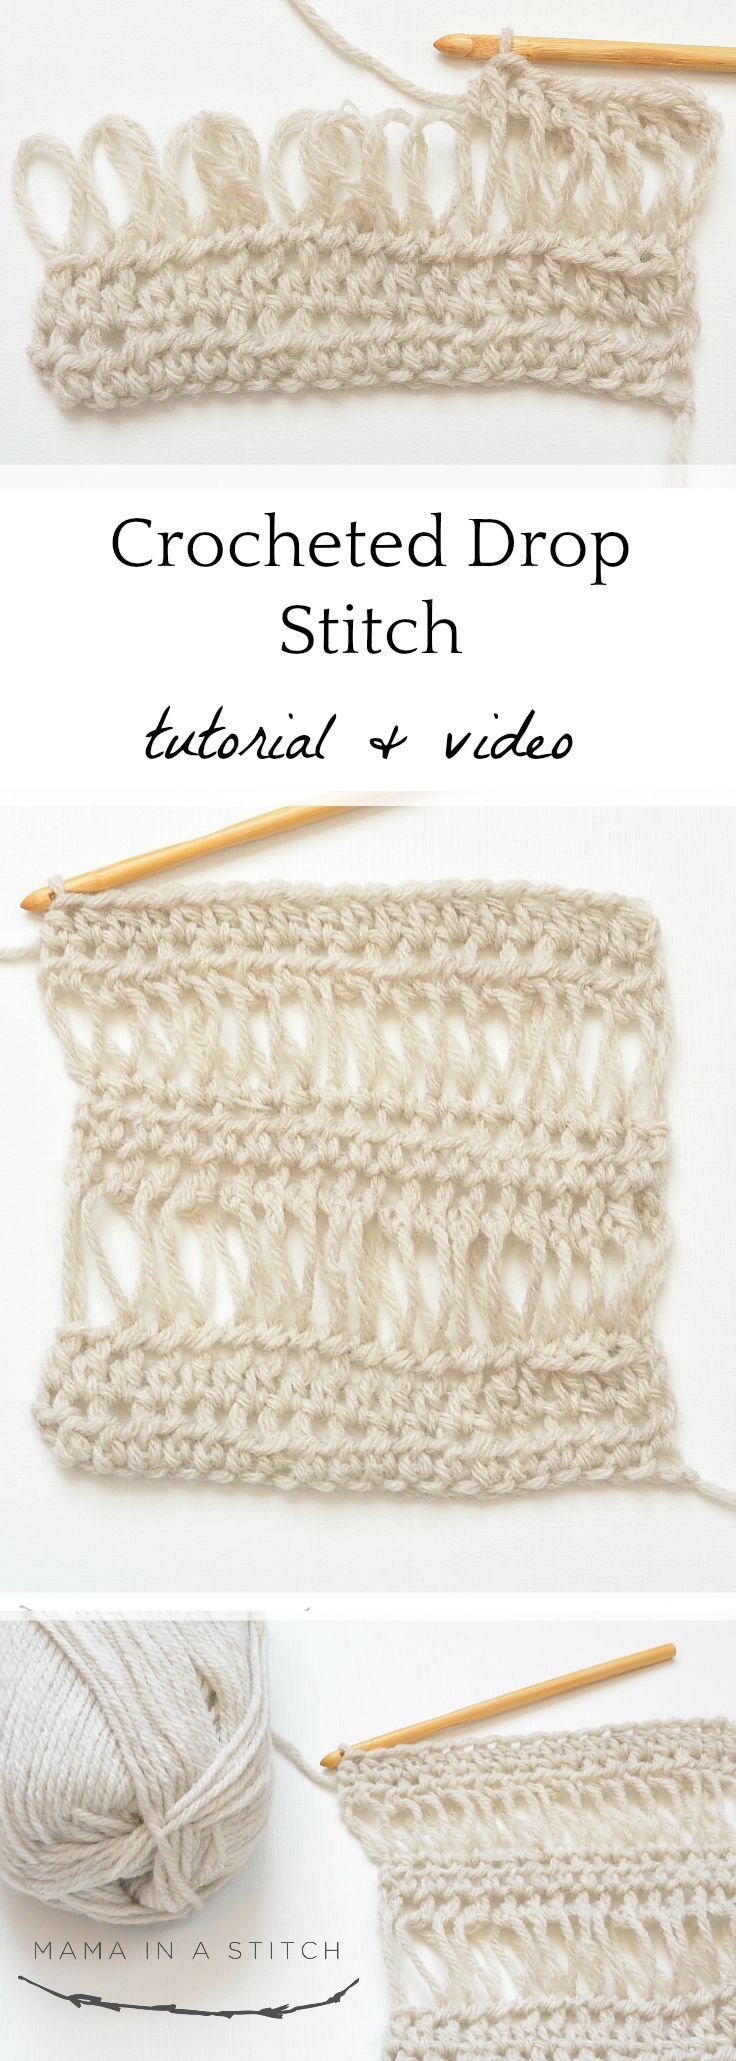 How To Crochet the Drop Stitch | Patrones Hilo y Lana | Pinterest ...